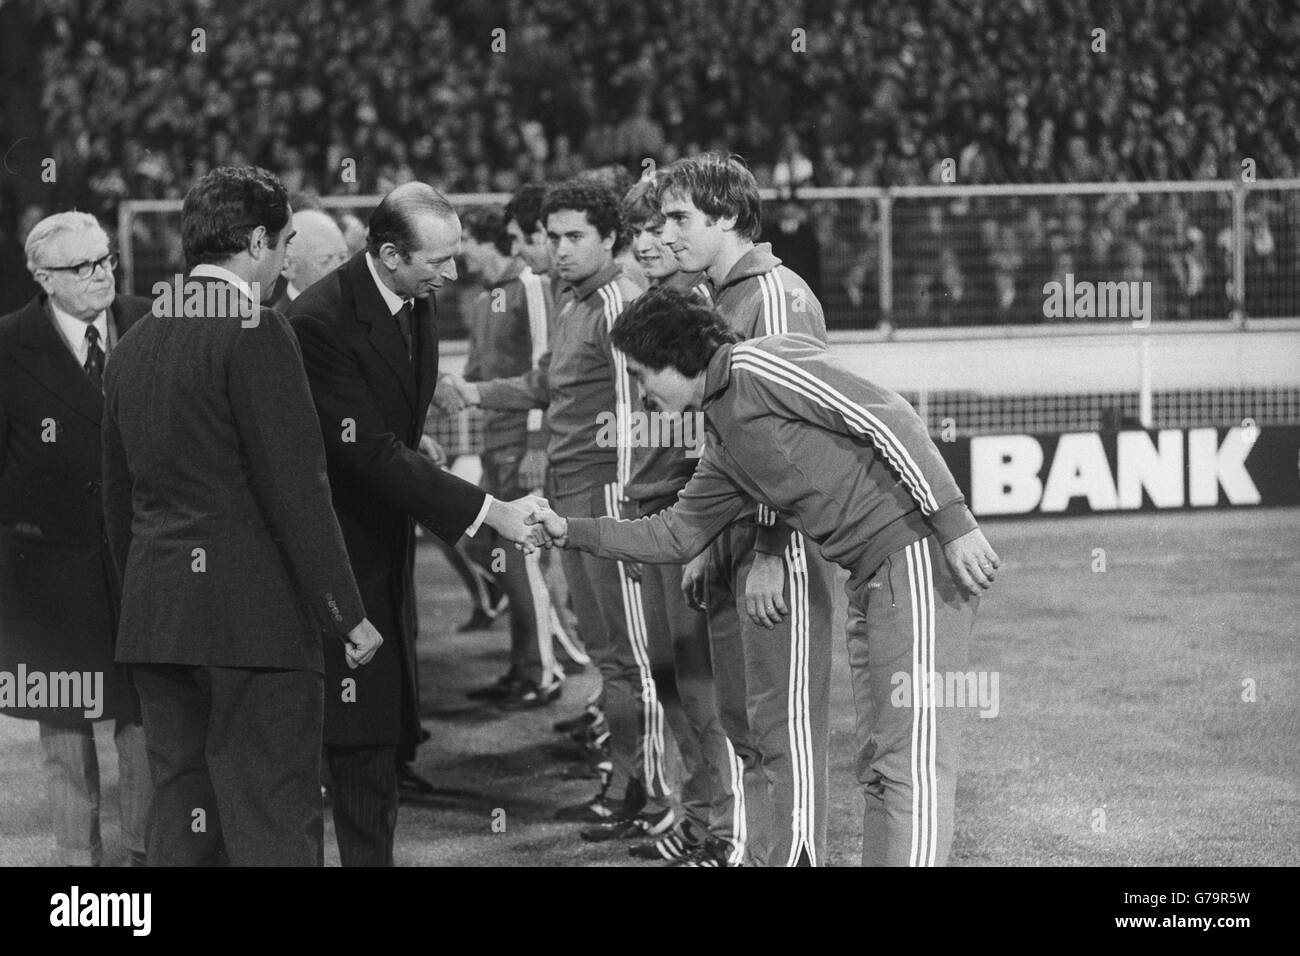 The Duke of Kent, President of the Football Association, meets members of the Italian World Cup team at Wembley Stock Photo